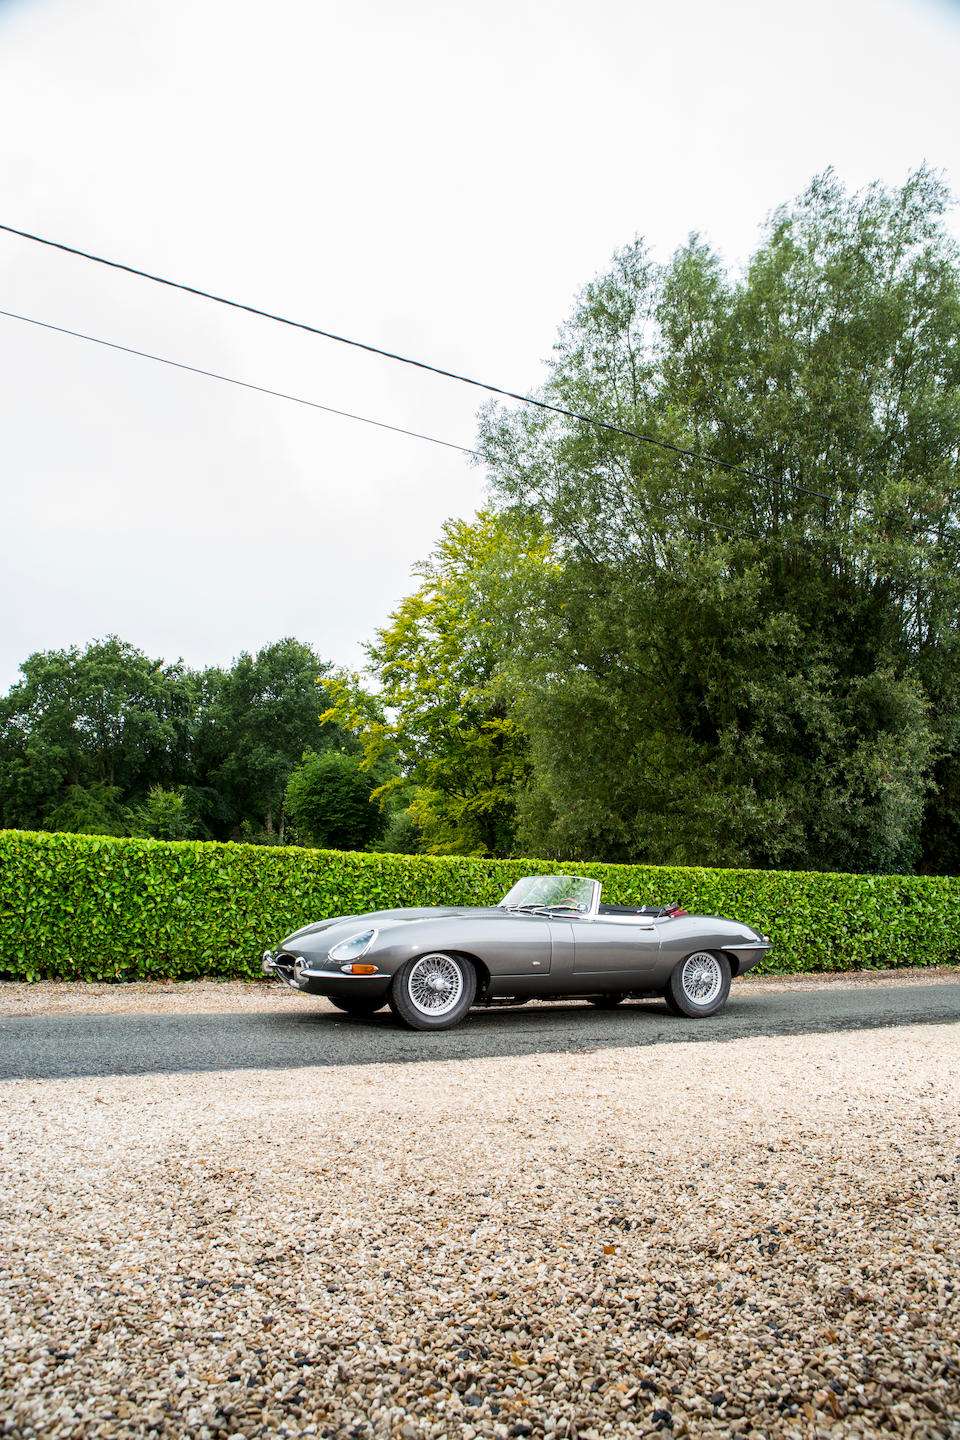 The Ex-Ado Blaton,1961 Jaguar E-Type 'Series 1' 3.8-Litre Flat Floor – External Bonnet Lock Roadster  Chassis no. 875353 Engine no. R1507-8